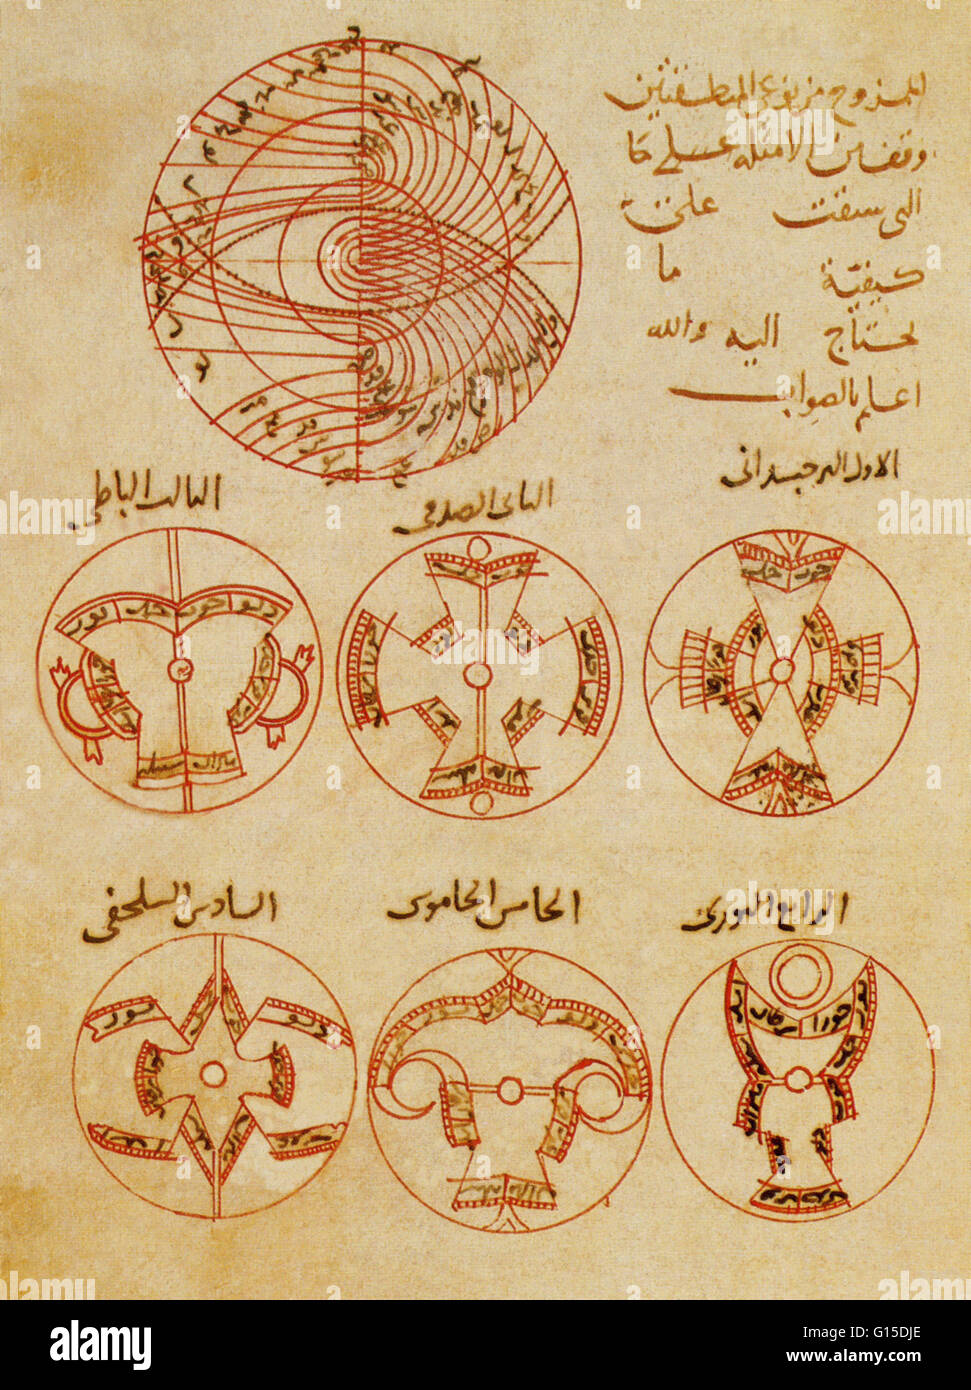 """Treatise on the Astrolabe,"" a Seljuk-illustrated Arabic manuscript in naskh script, copied by Mahmud bin Muhammad Stock Photo"